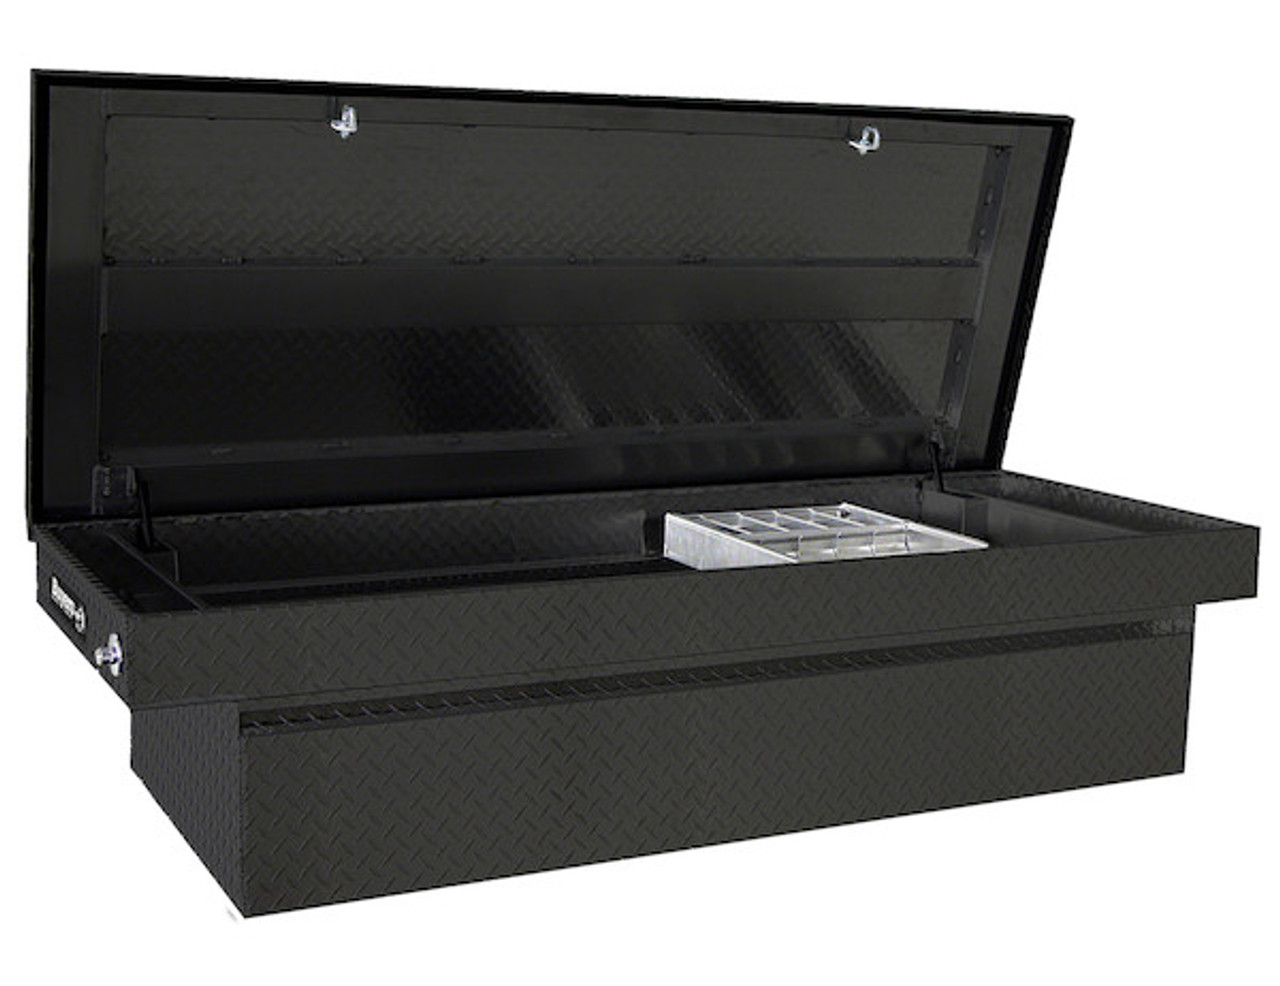 "1729415 BUYERS PRODUCTS BLACK DIAMOND TREAD ALUMINUM CROSSOVER TRUCK TOOLBOX 23""HX20""DX71""W"